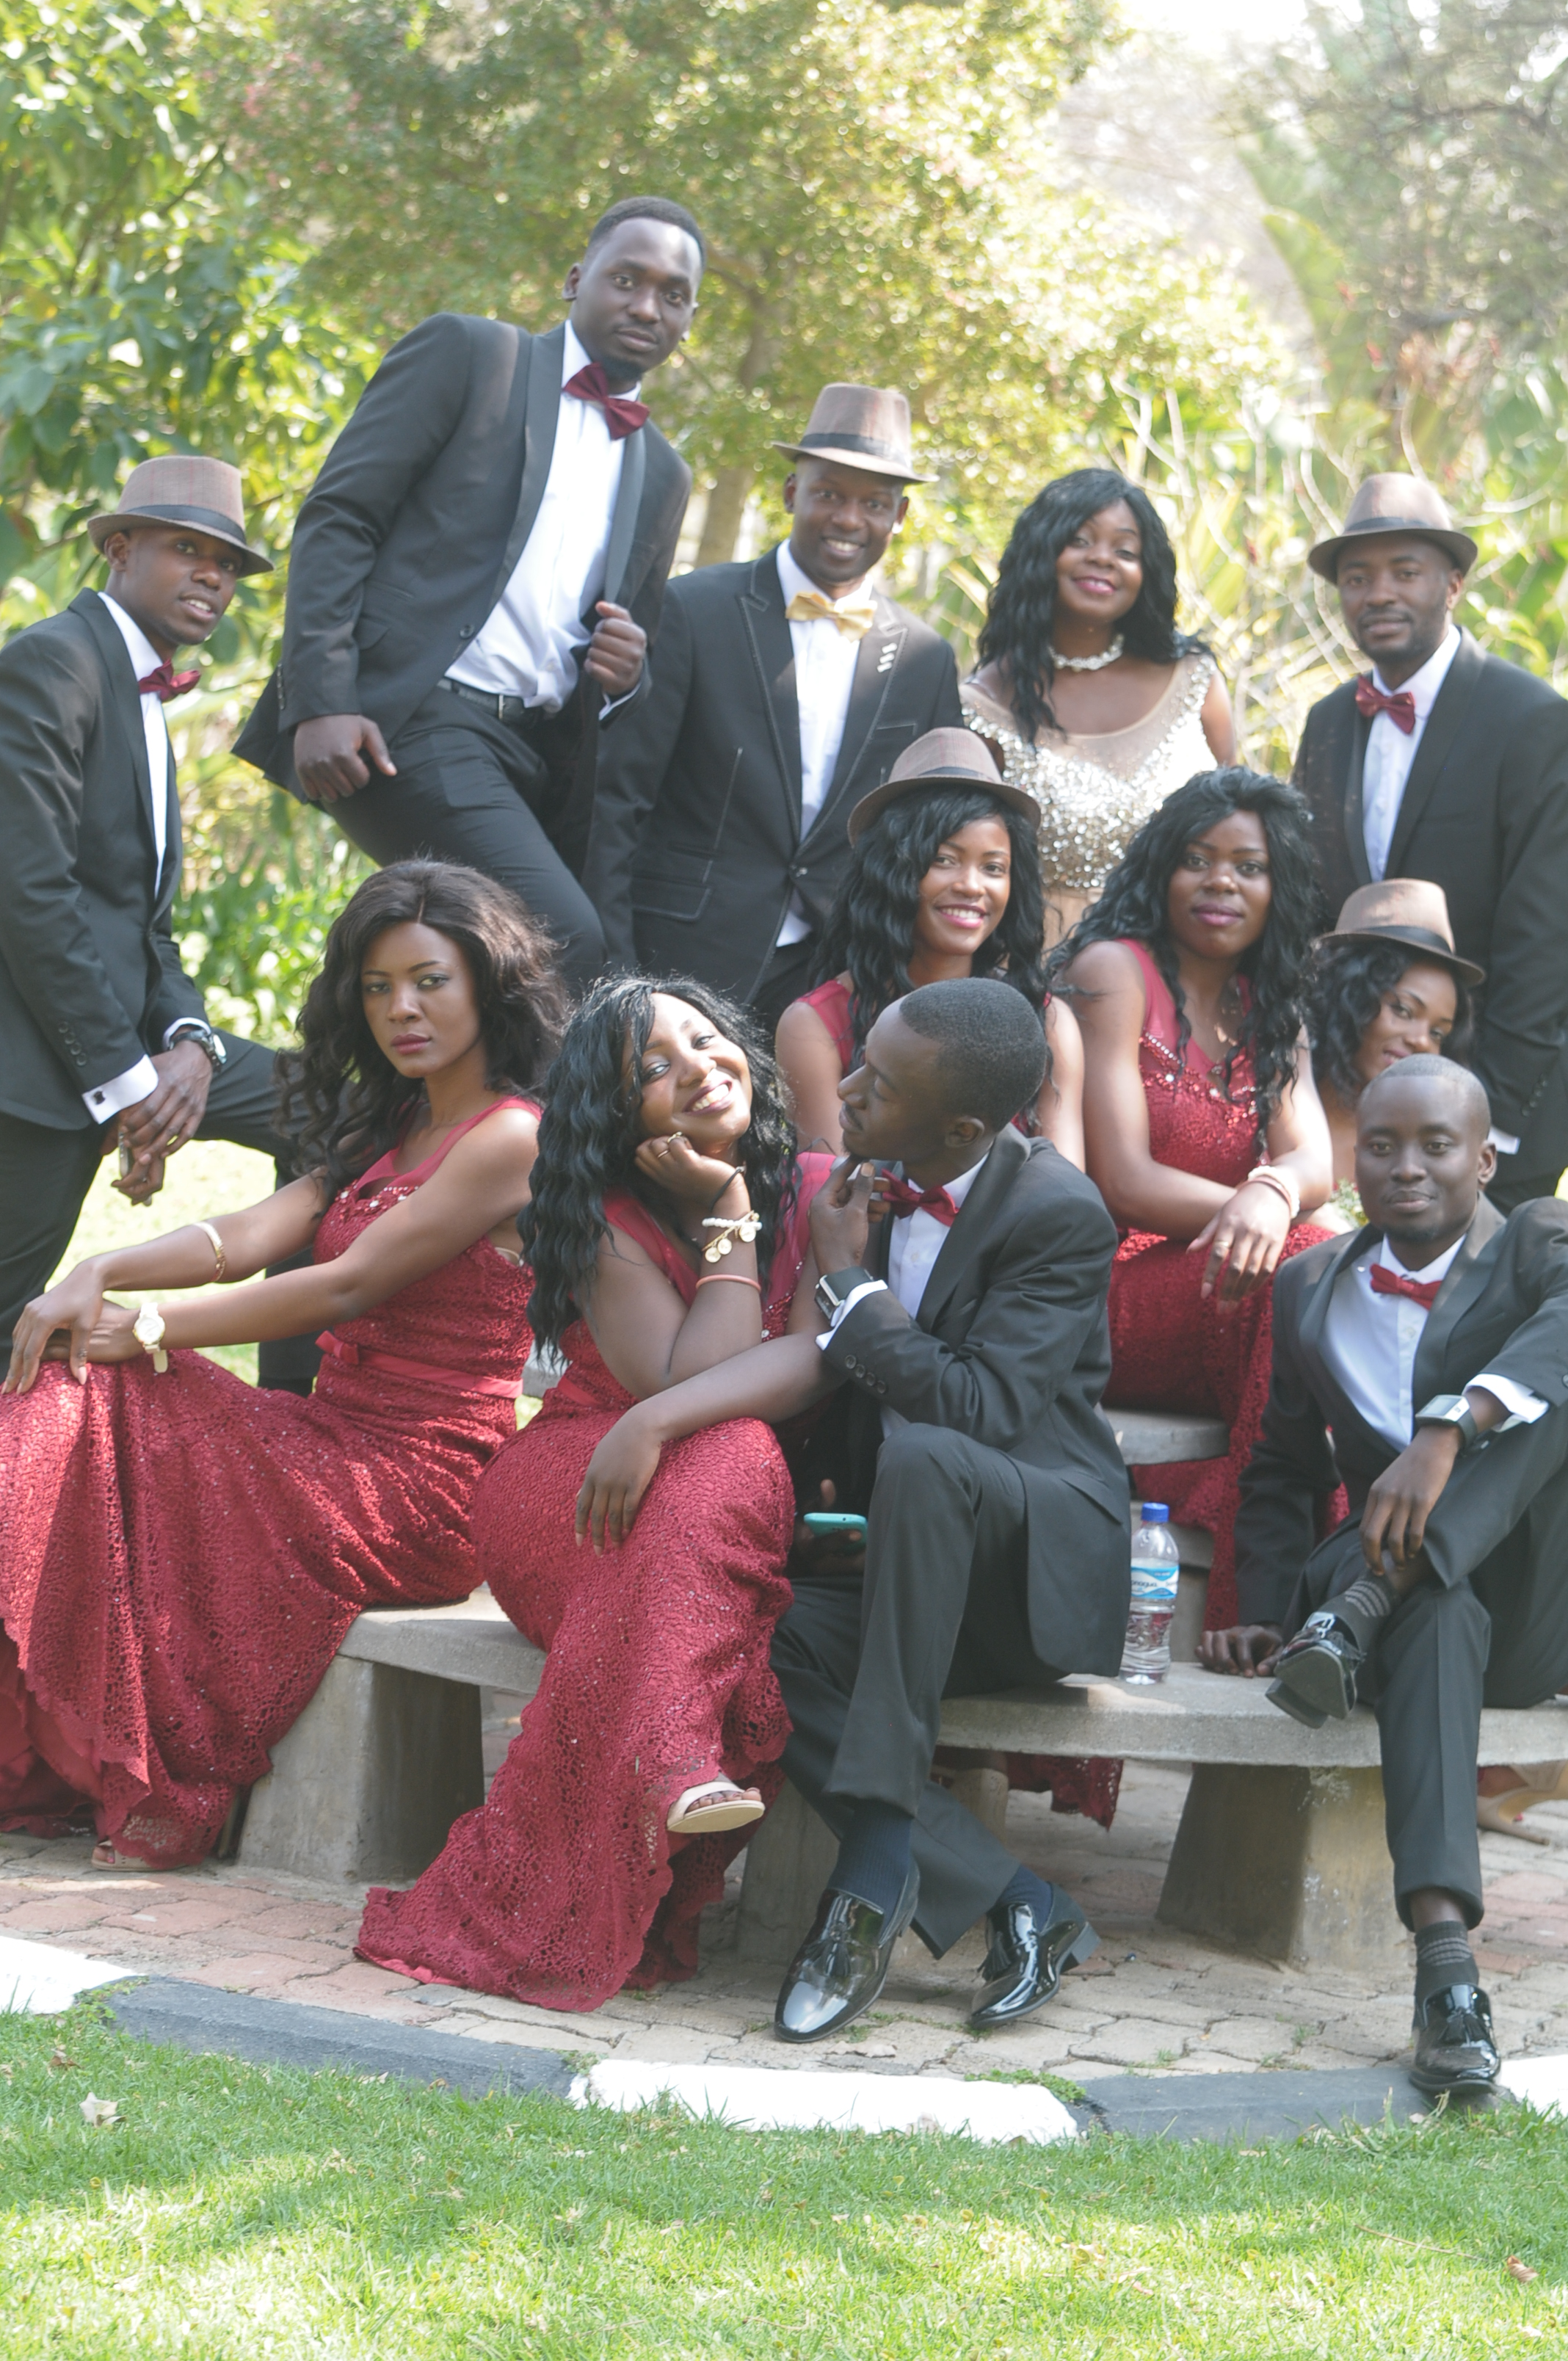 Aphinah Makotose and Takudzwa Jacobs wedding on Wedding Expos Africa